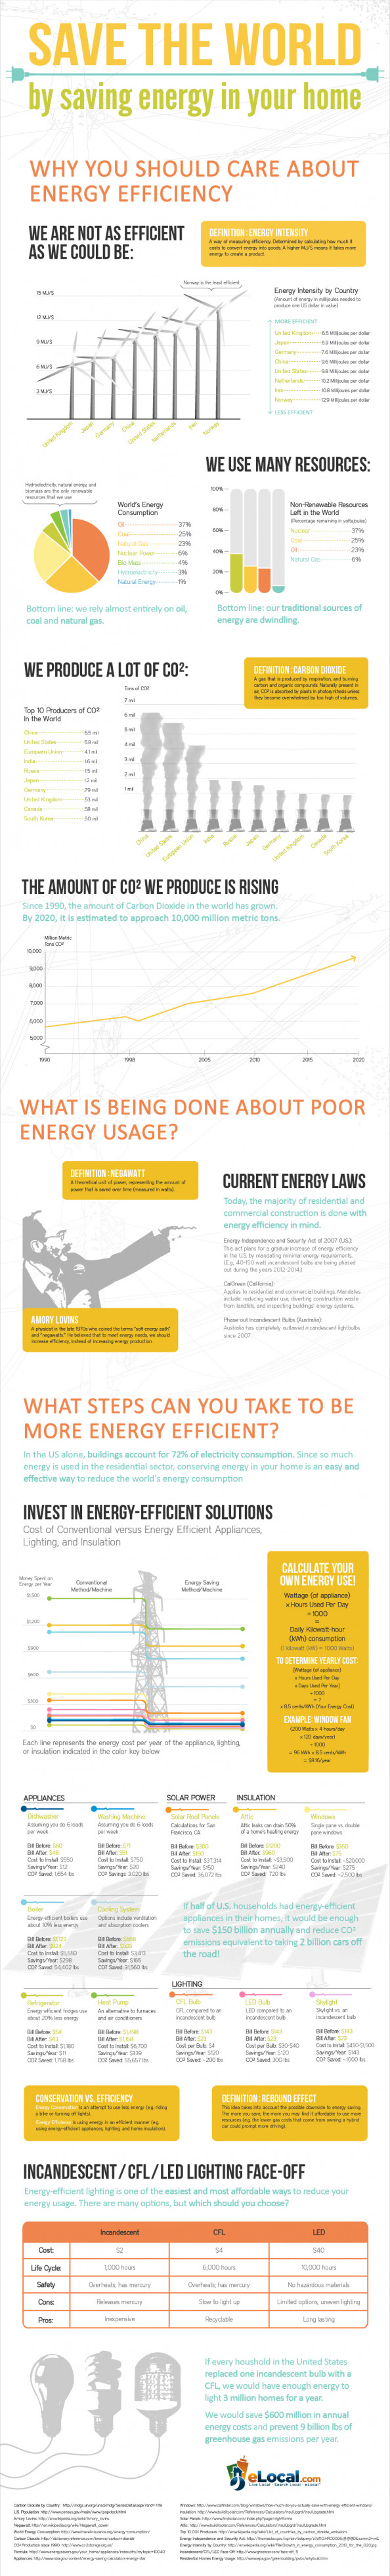 Save The World by Saving Energy Infographic